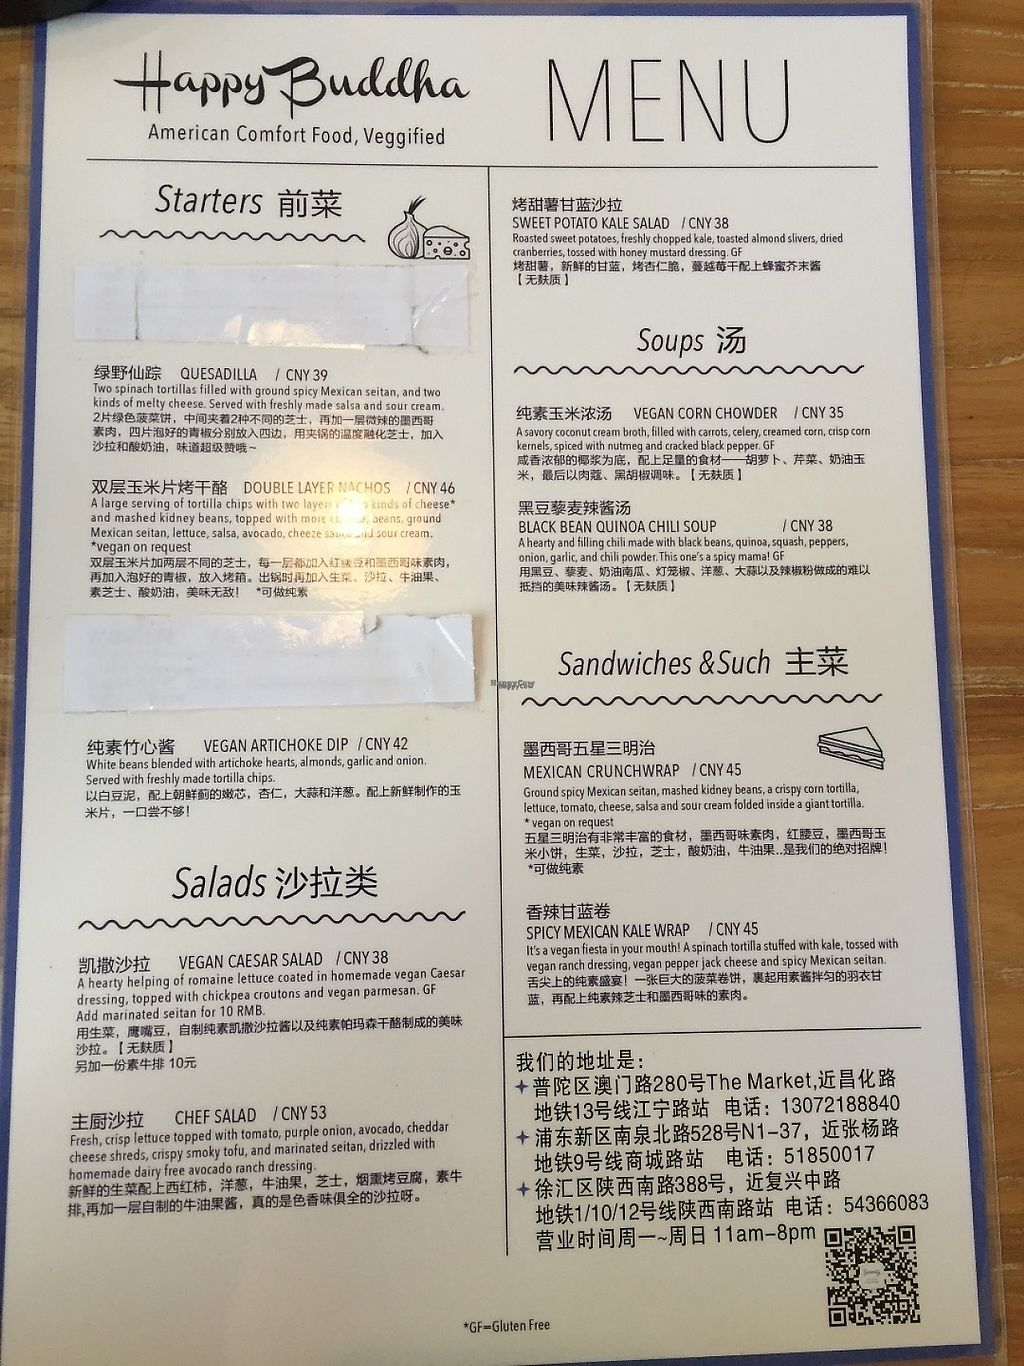 """Photo of Sprout Lifestyle Cafe - Shaanxi  by <a href=""""/members/profile/CharlieDenman"""">CharlieDenman</a> <br/>Menu <br/> November 19, 2016  - <a href='/contact/abuse/image/61308/192176'>Report</a>"""